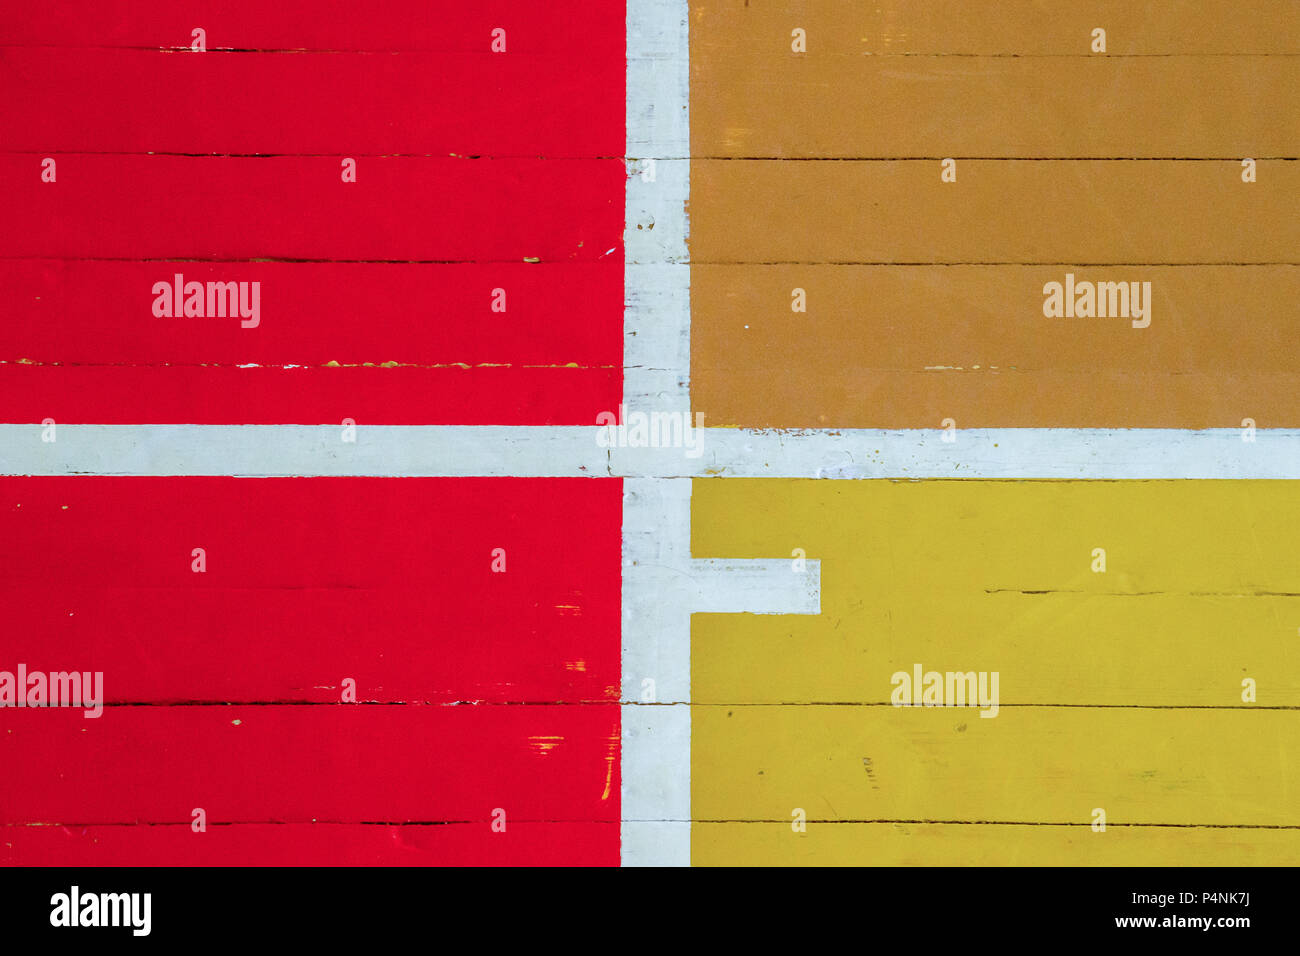 Worn out wooden floor of sports hall with colorful marking lines - Stock Image